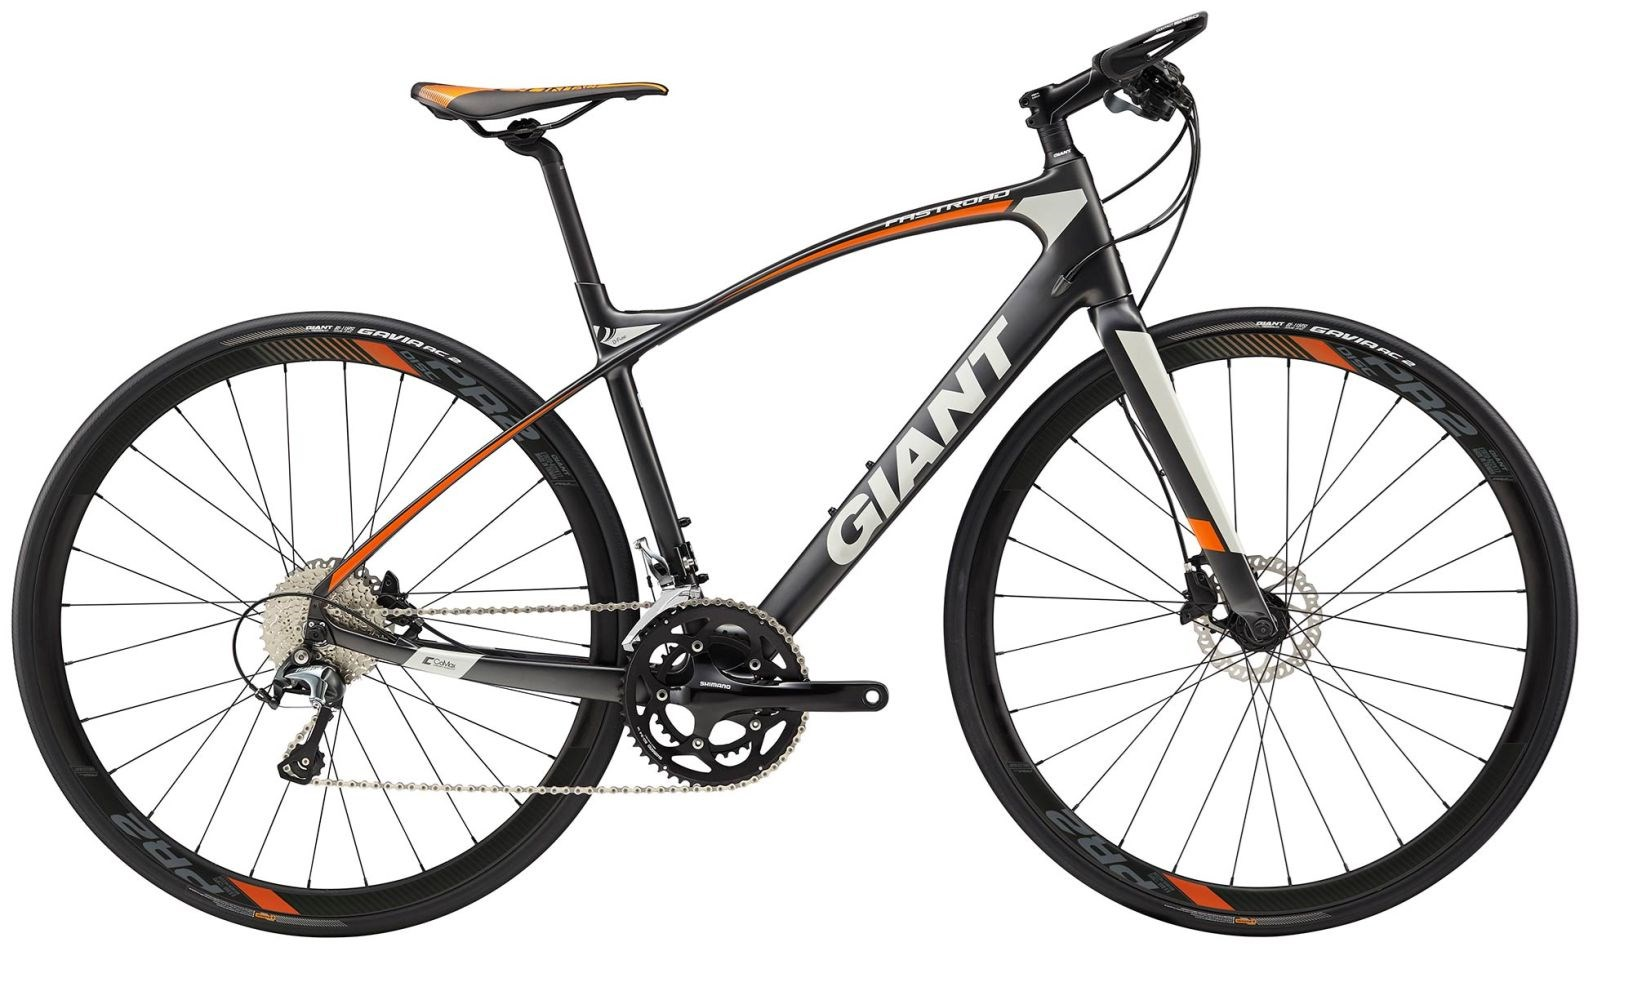 2018 GIANT FASTROAD COMAX CARBON FLAT BAR ROAD BIKE, CHARCOAL/ORA ...